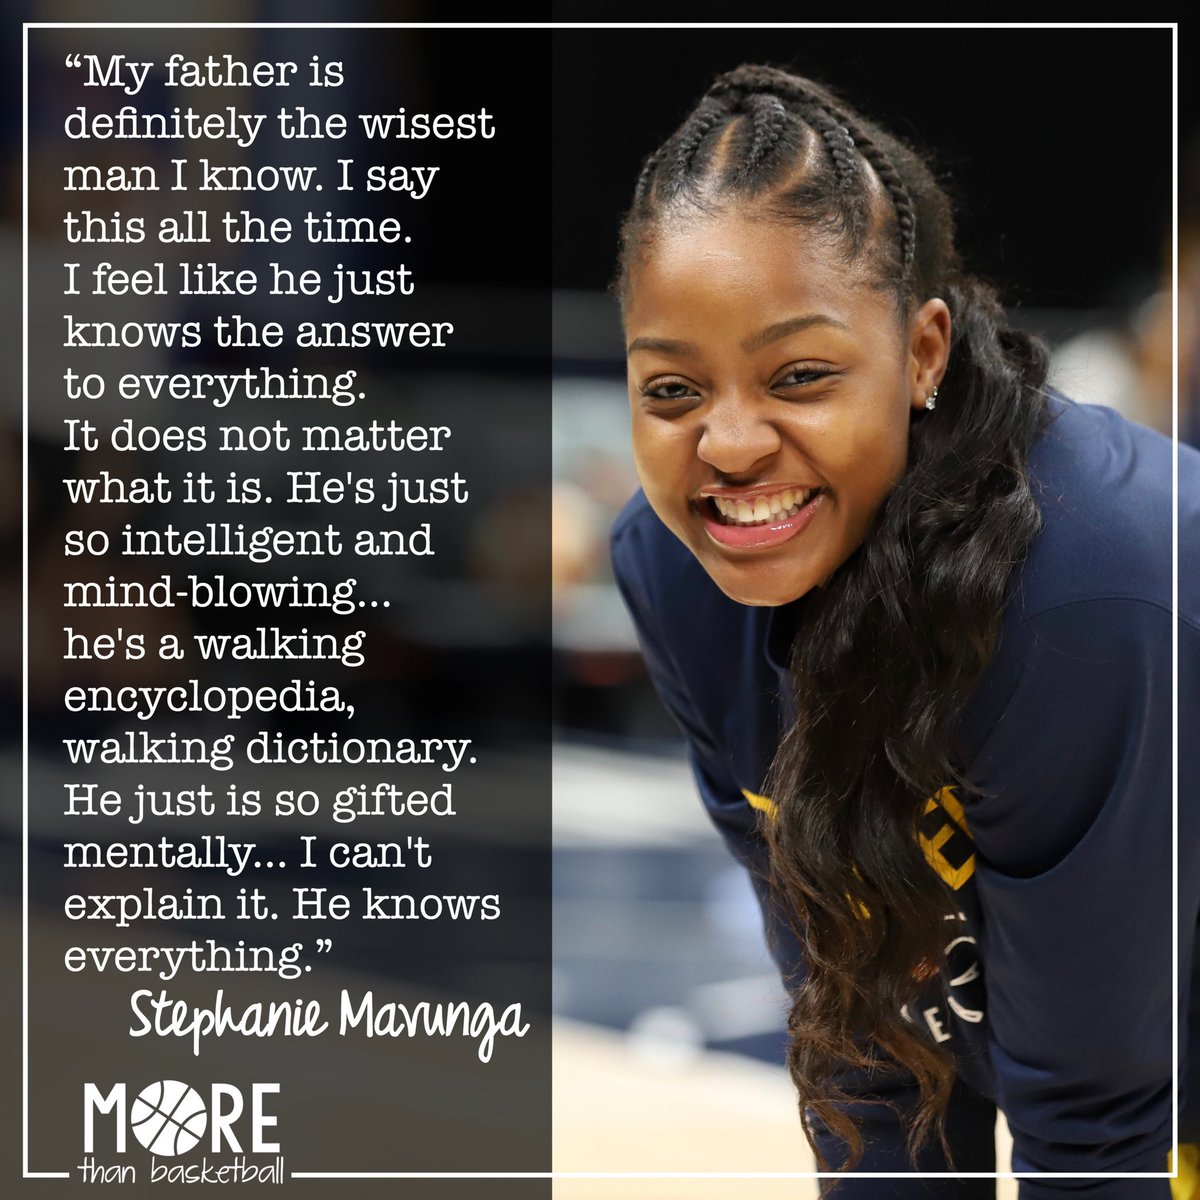 The @indianafever's @SMavunga_23 says her father Phillip is the wisest man she knows. When she was young, the Mavunga family immigrated from Zimbabwe to the US in pursuit of academic opportunities. Happy Father's Day, Phillip! . #wnba #fever20 #allforlove #fathersday